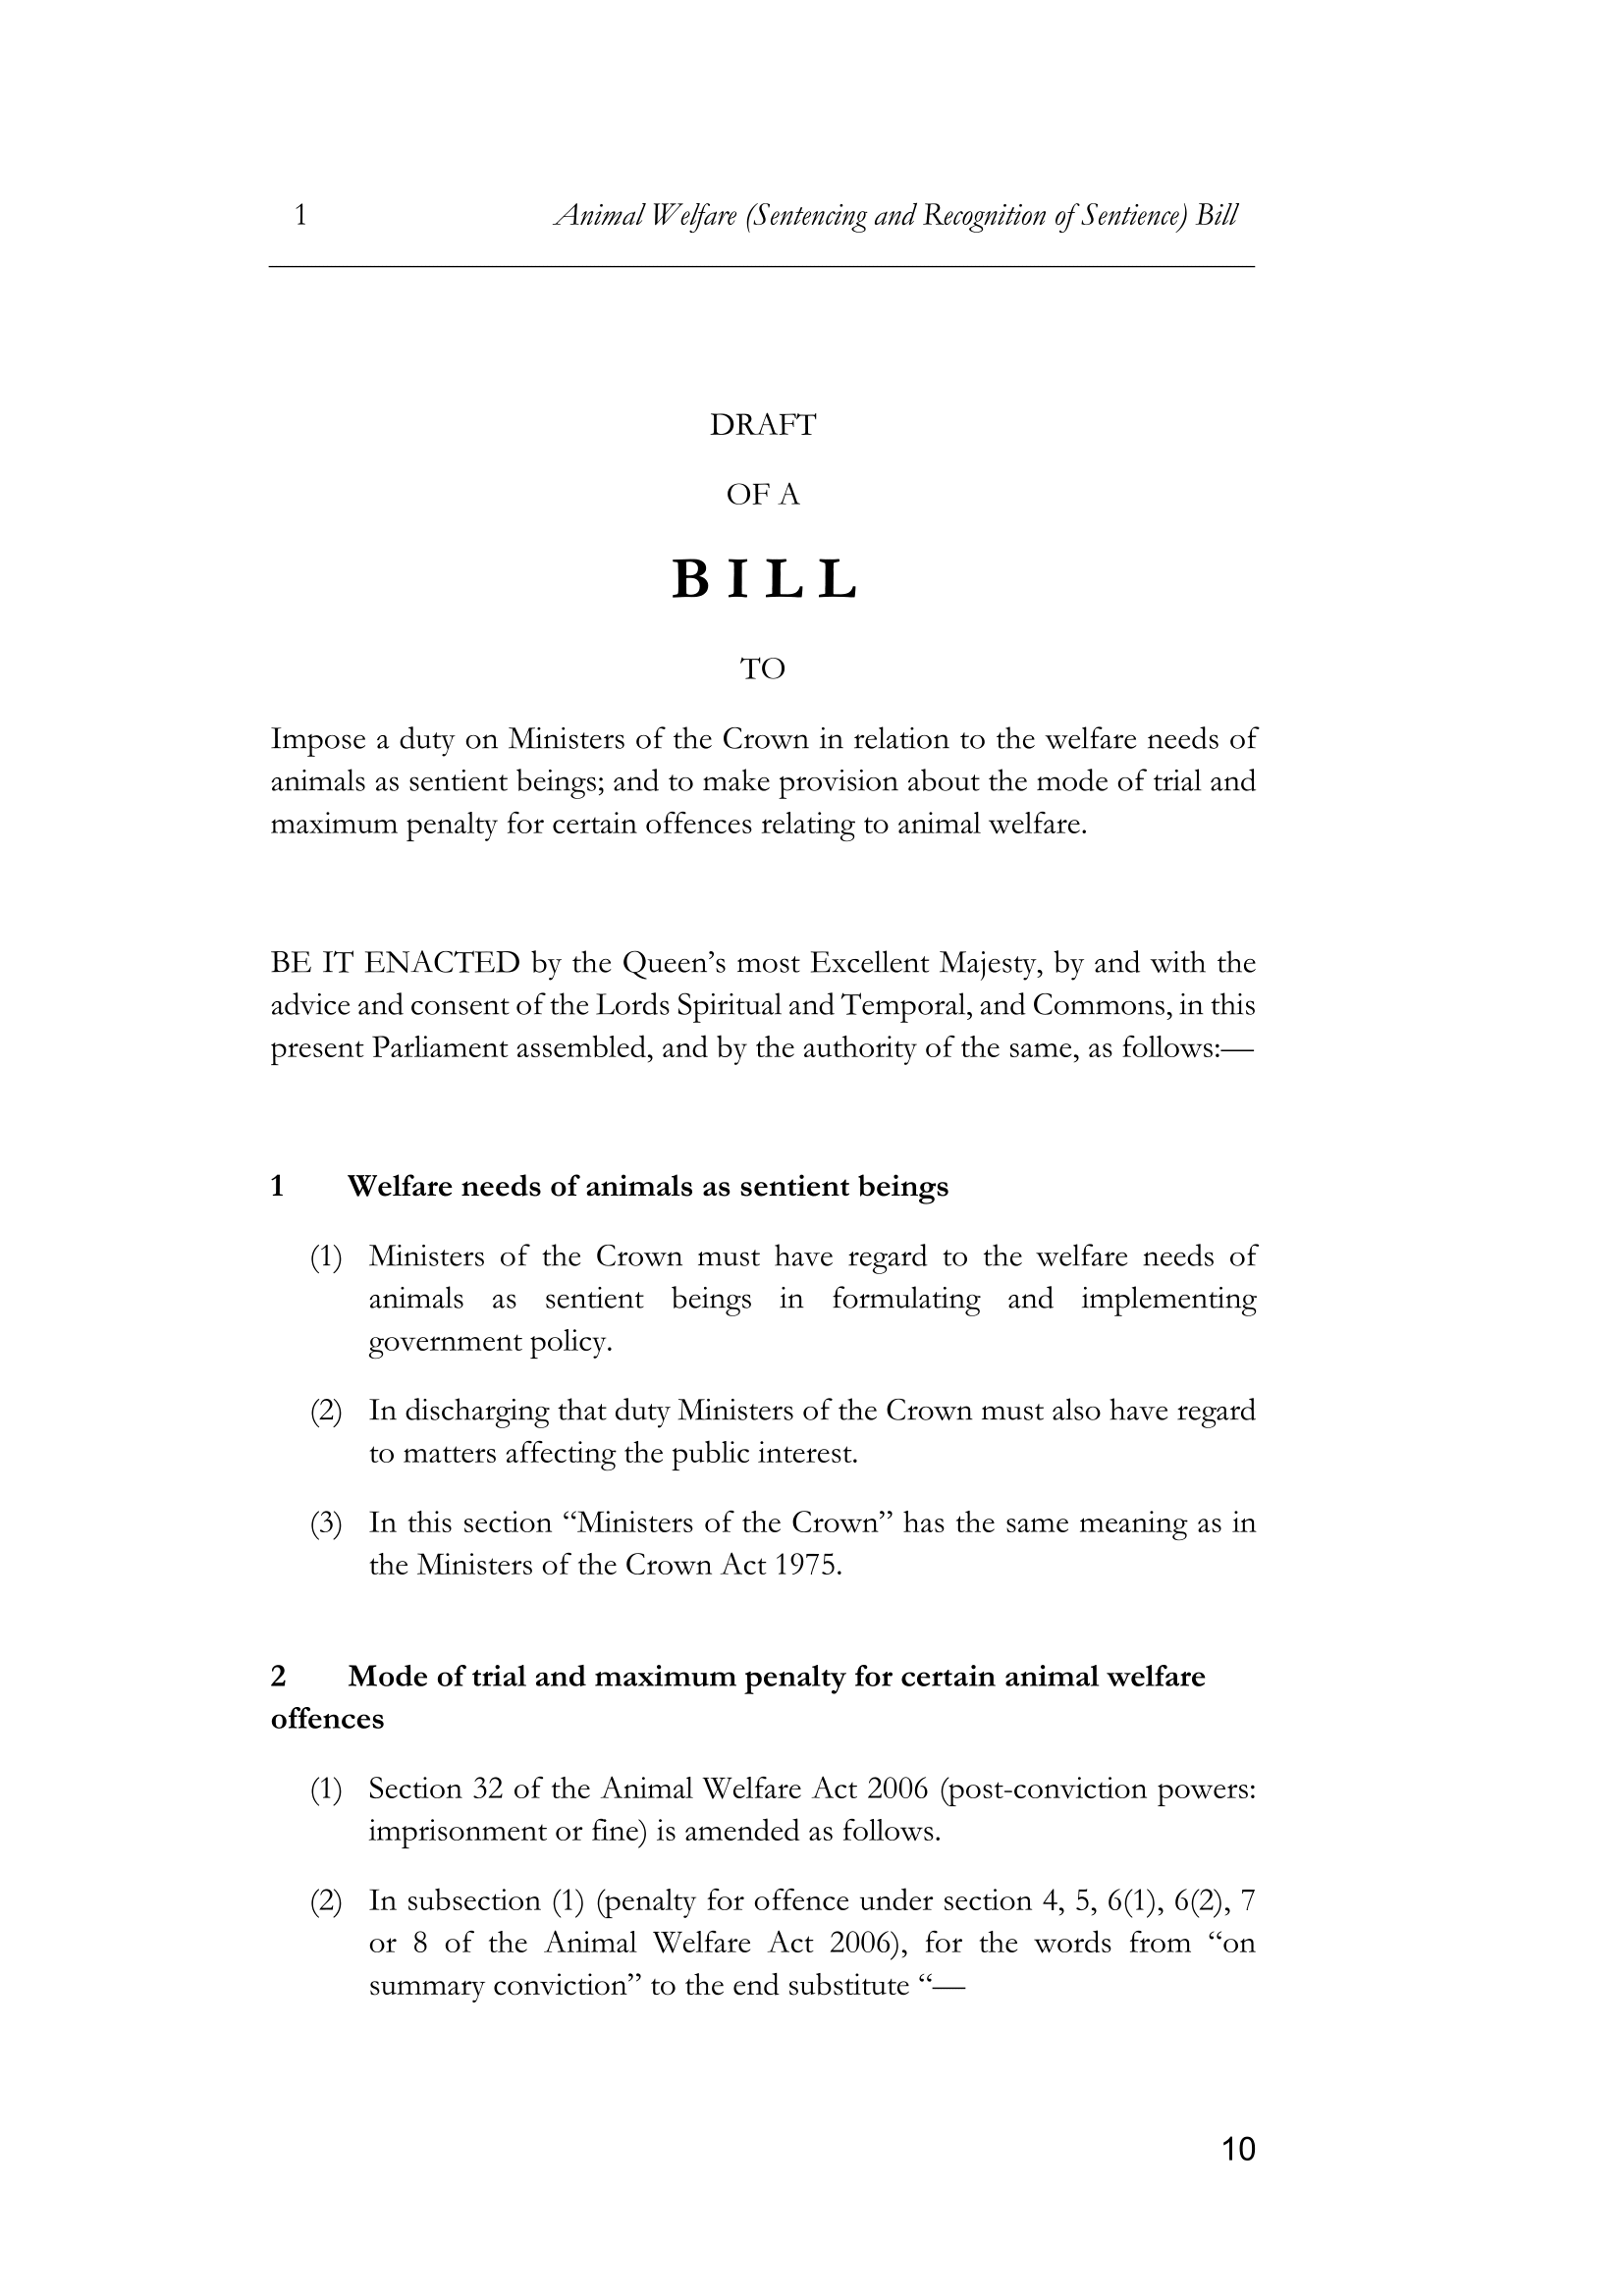 draft-animal-welfare-bill-171212-10.png